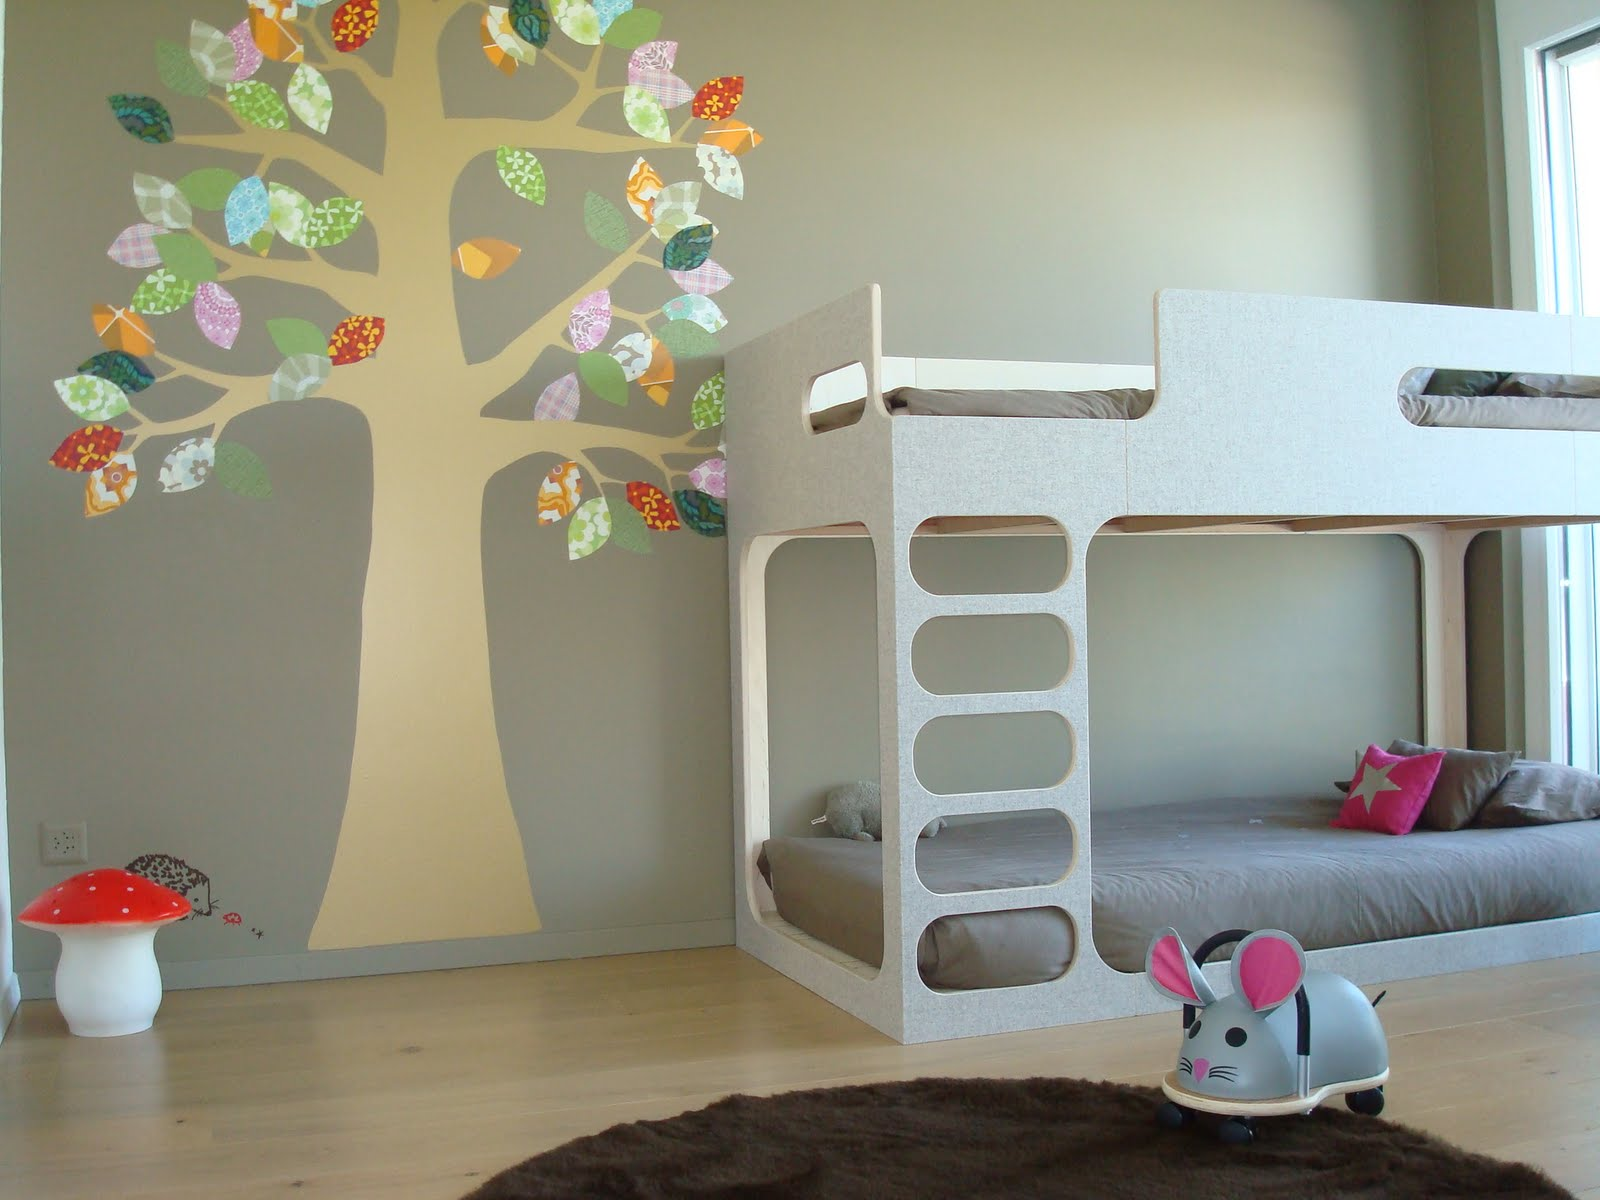 Childrens bedroom wallpaper ideas home decor uk for Ideas for kids room